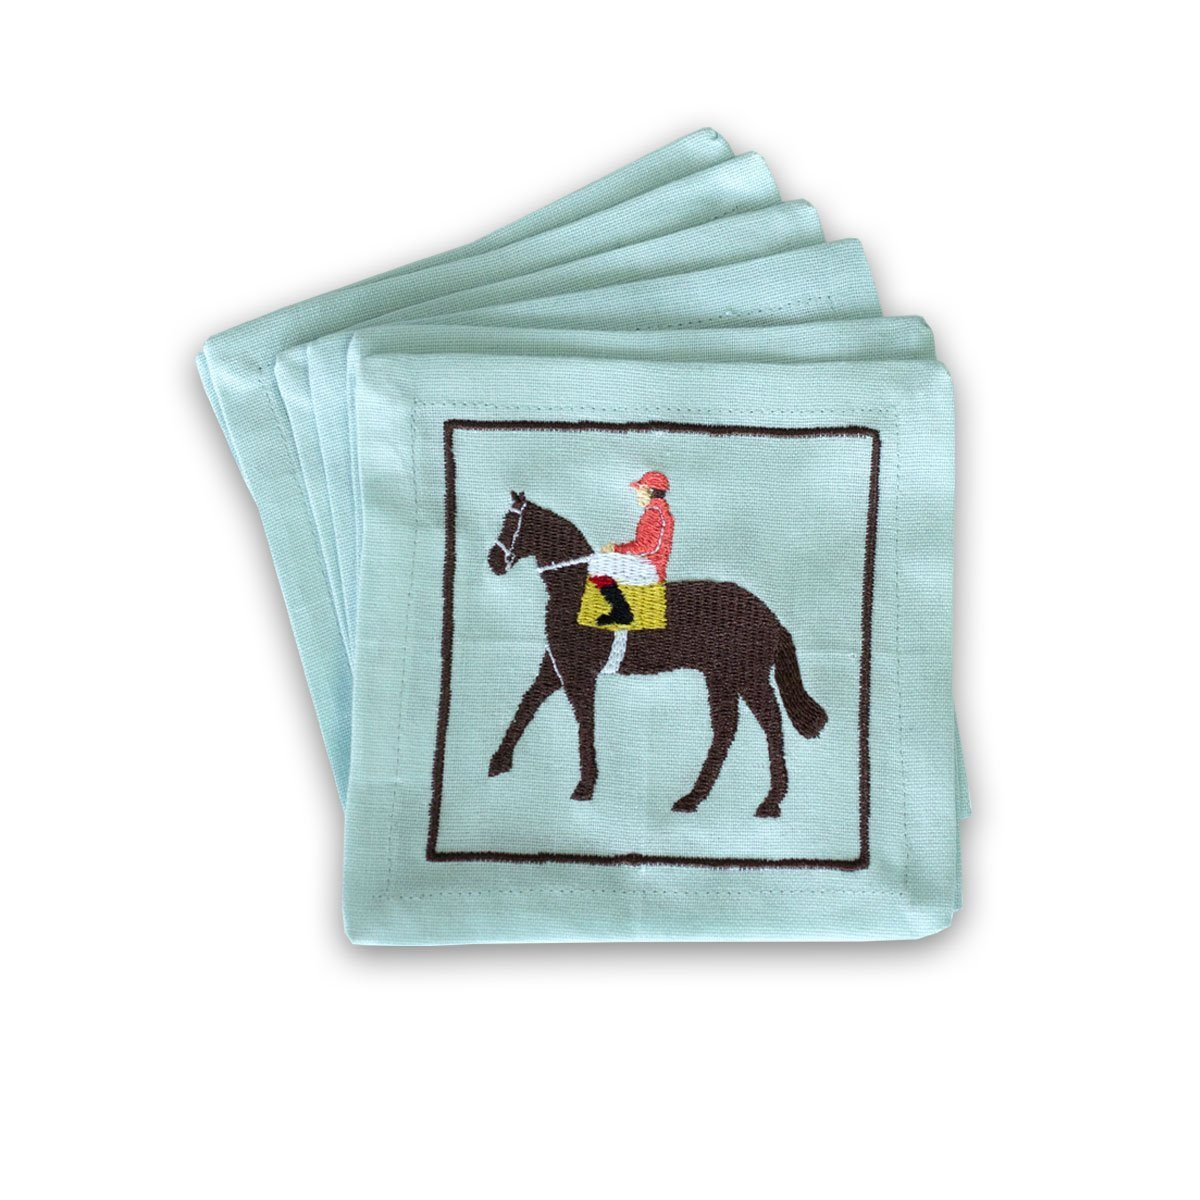 Riders Up Embroidered Cocktail Napkin Set of 6